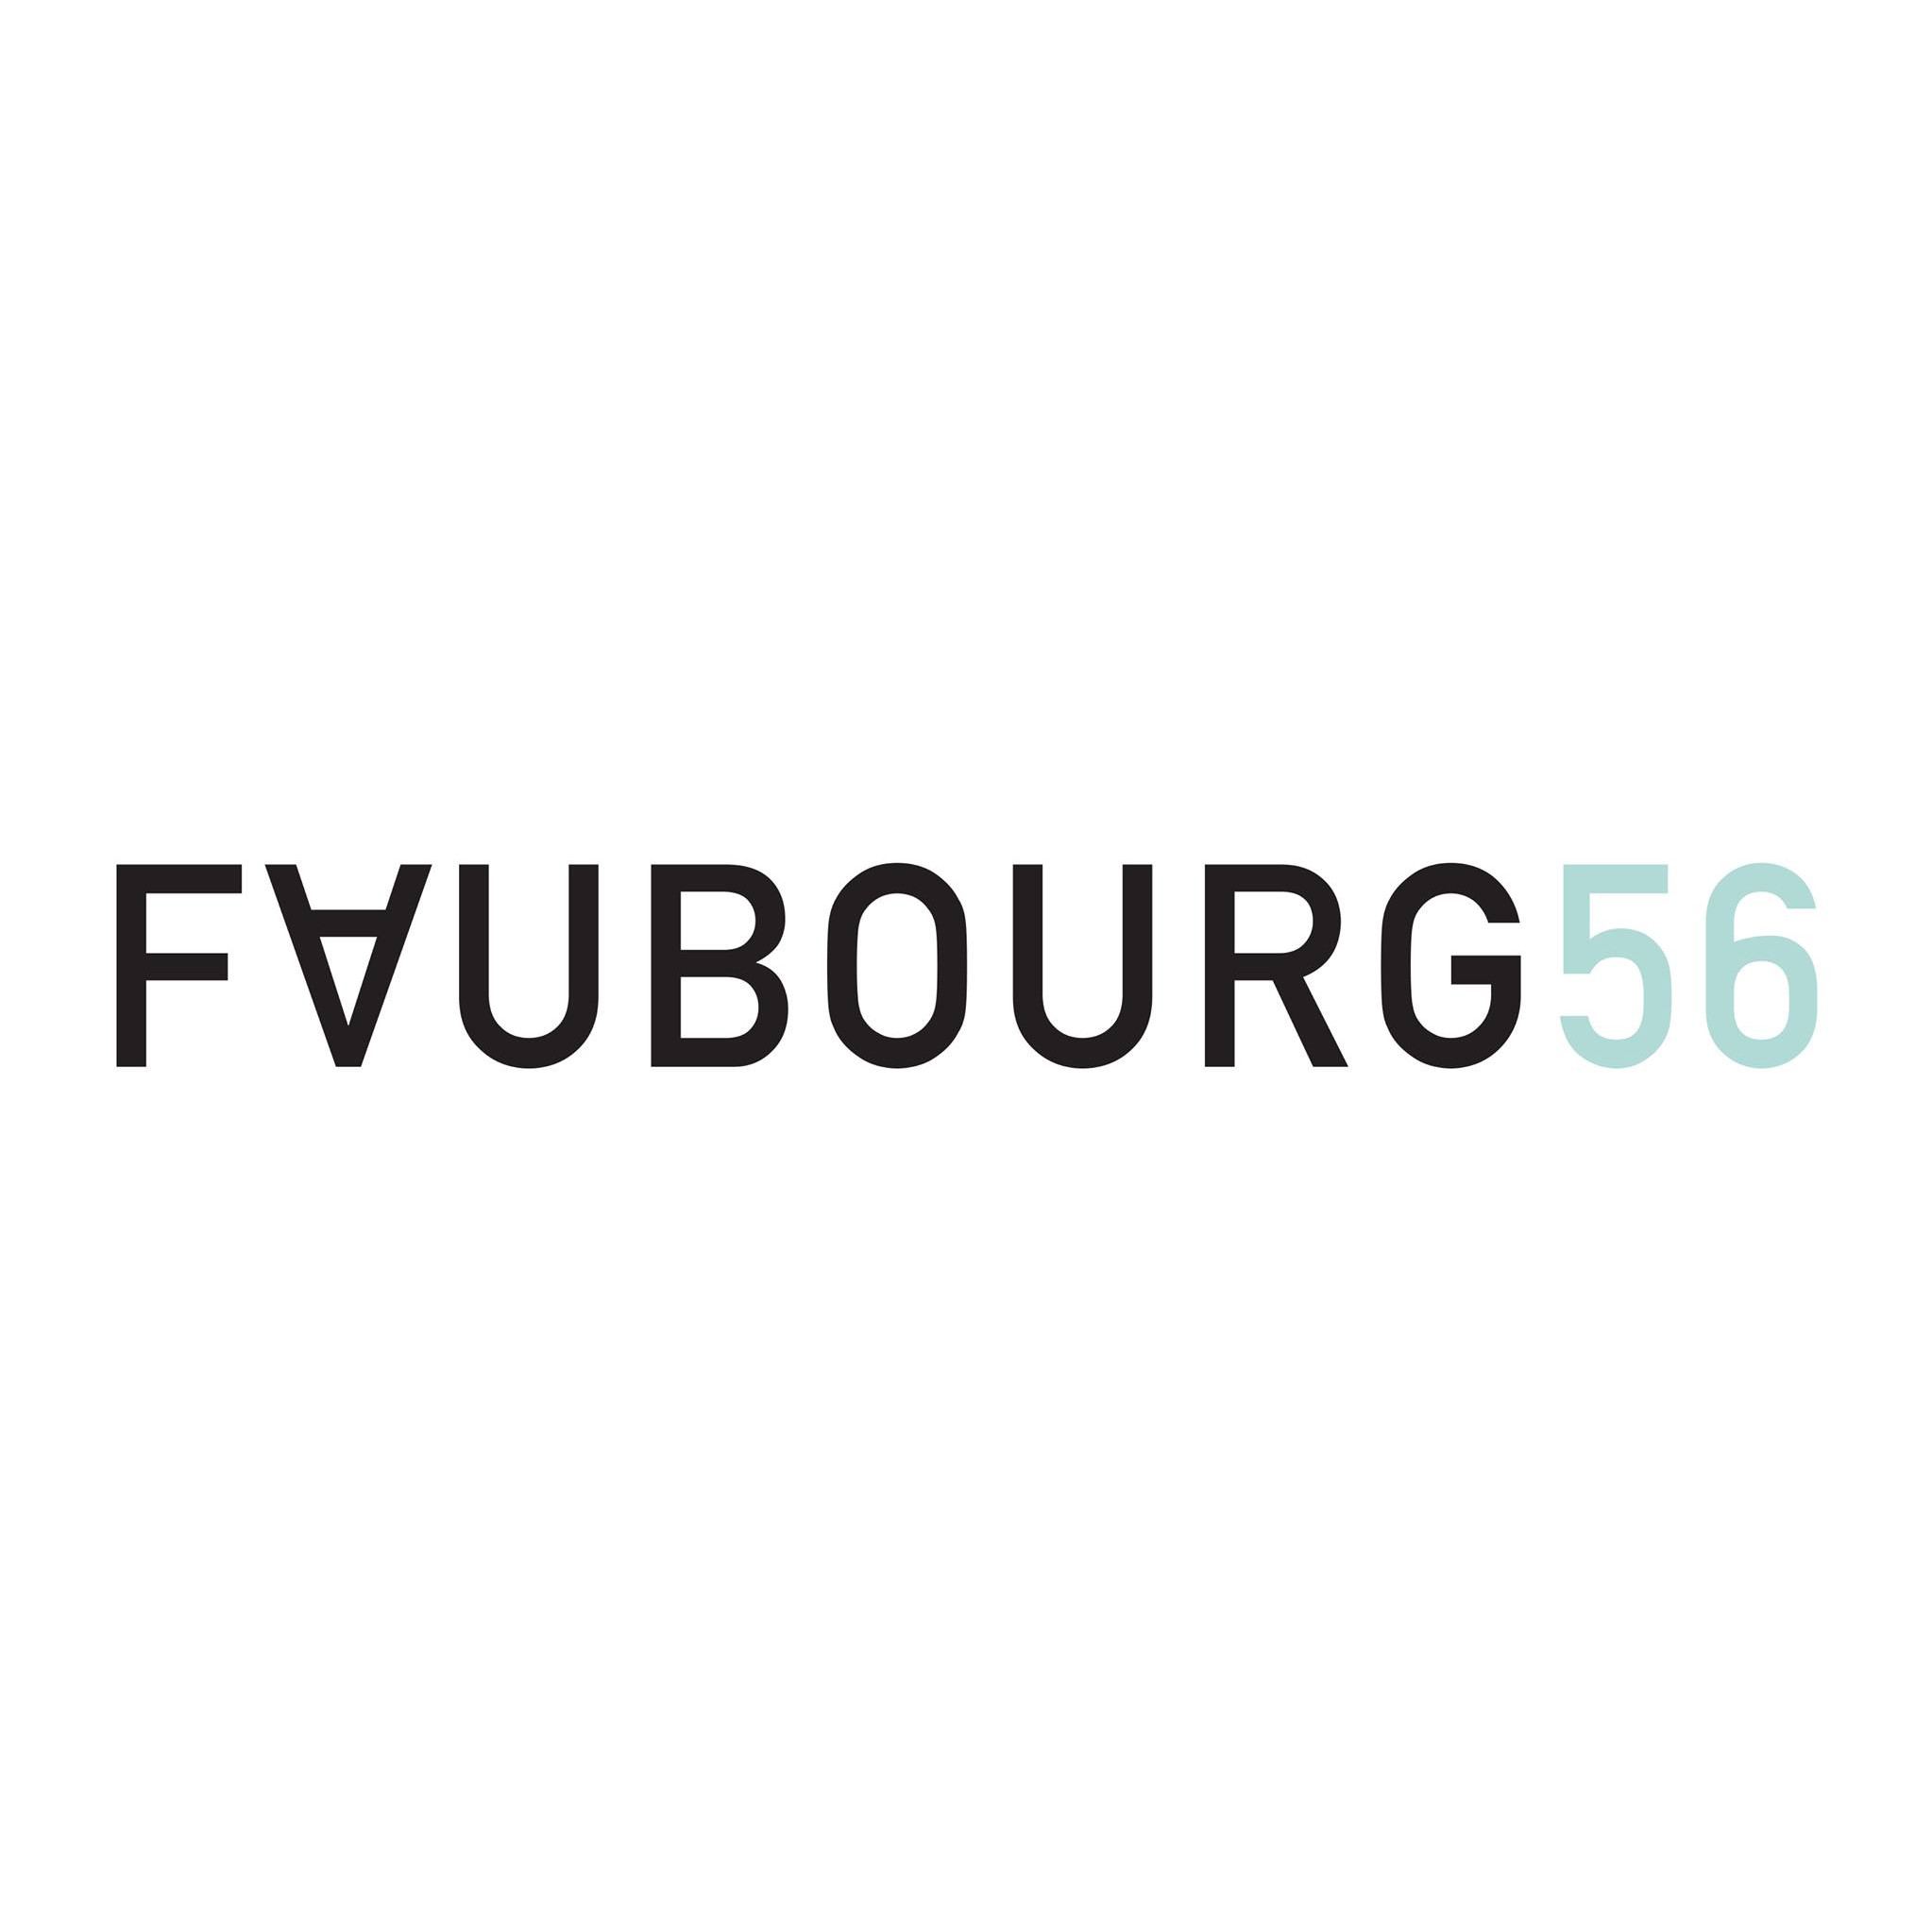 Faubourg56